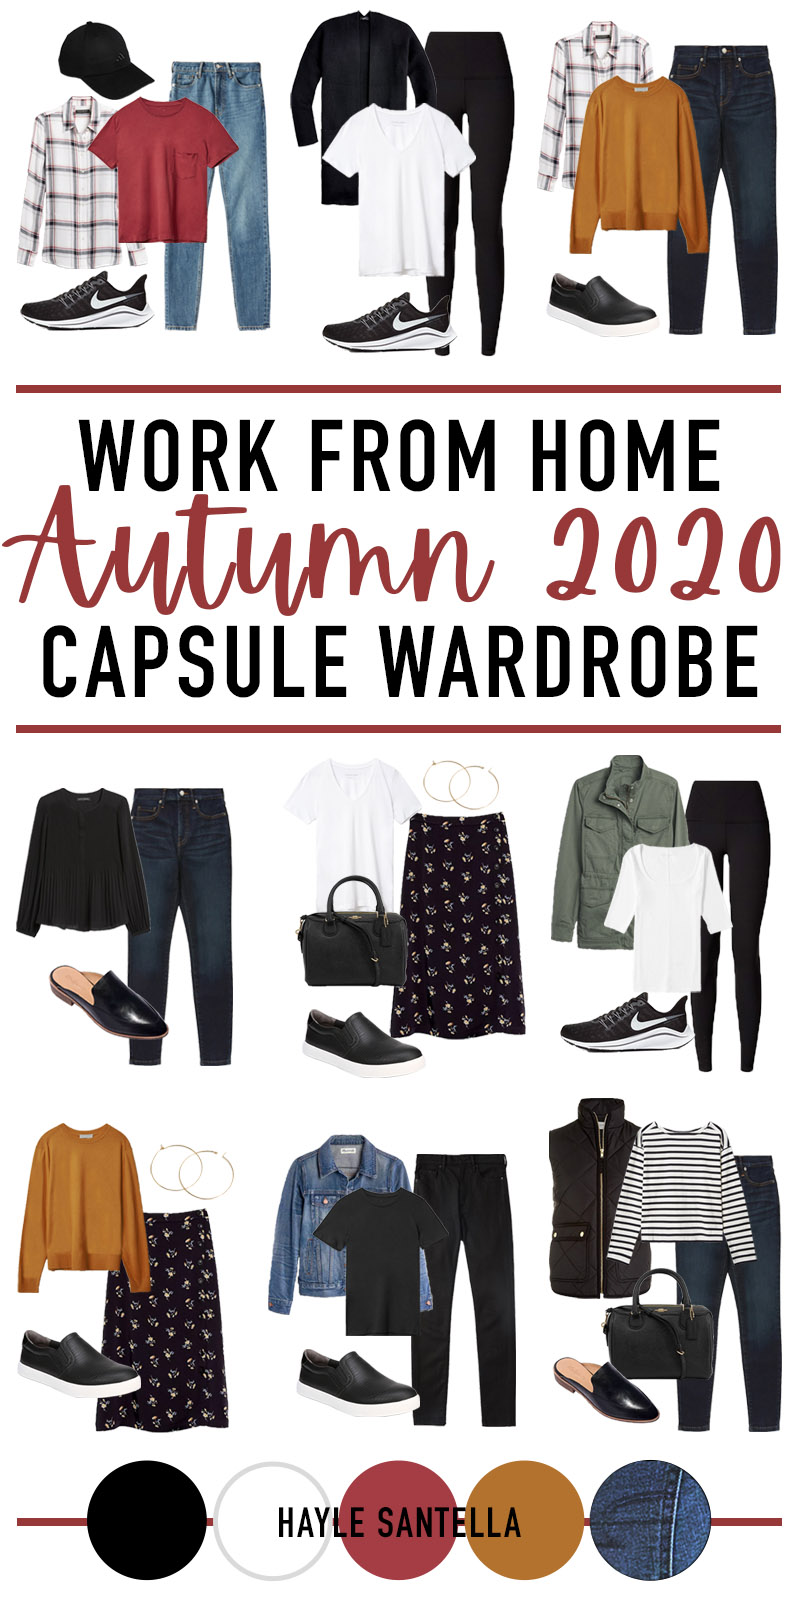 Work From Home Capsule Wardrobe for Fall 2020